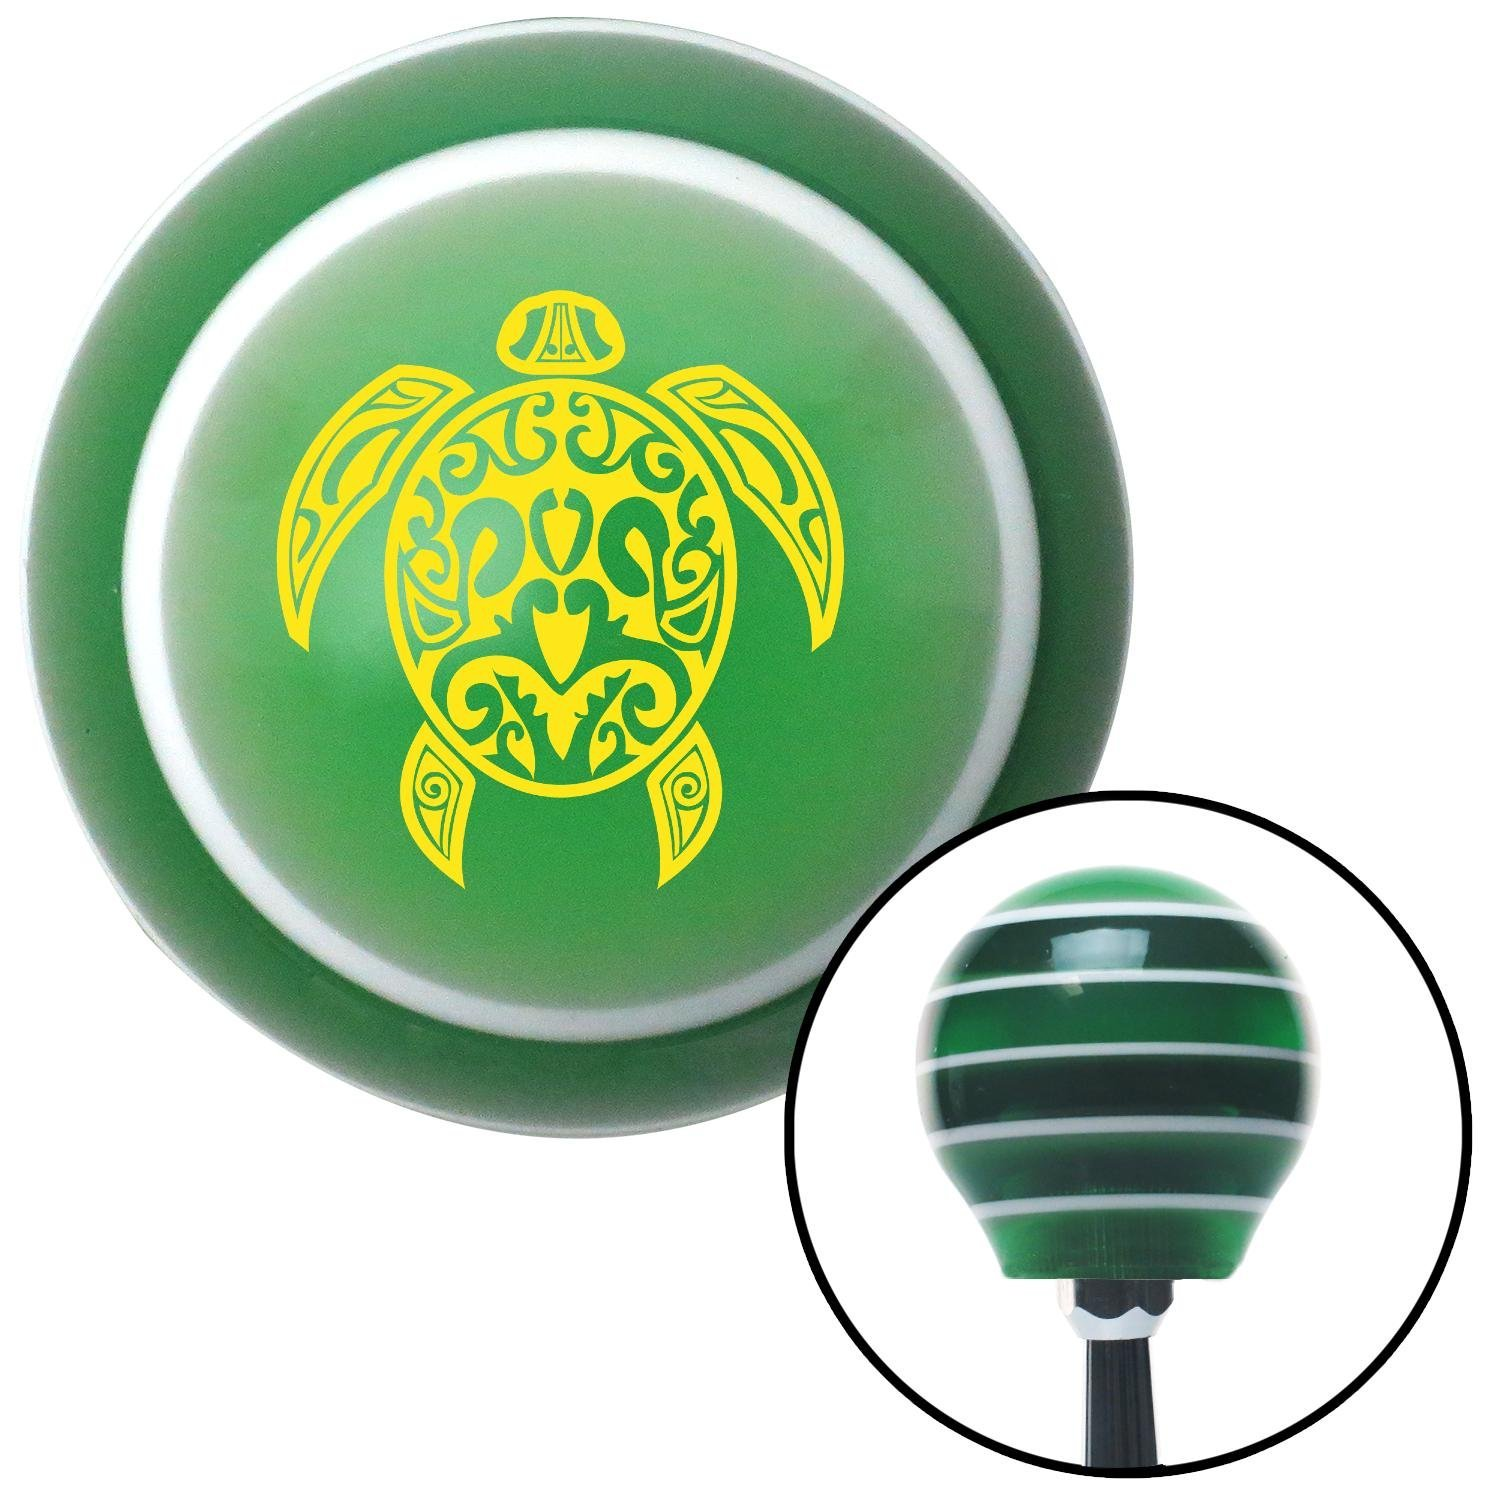 Yellow Giant Turtle American Shifter 124346 Green Stripe Shift Knob with M16 x 1.5 Insert